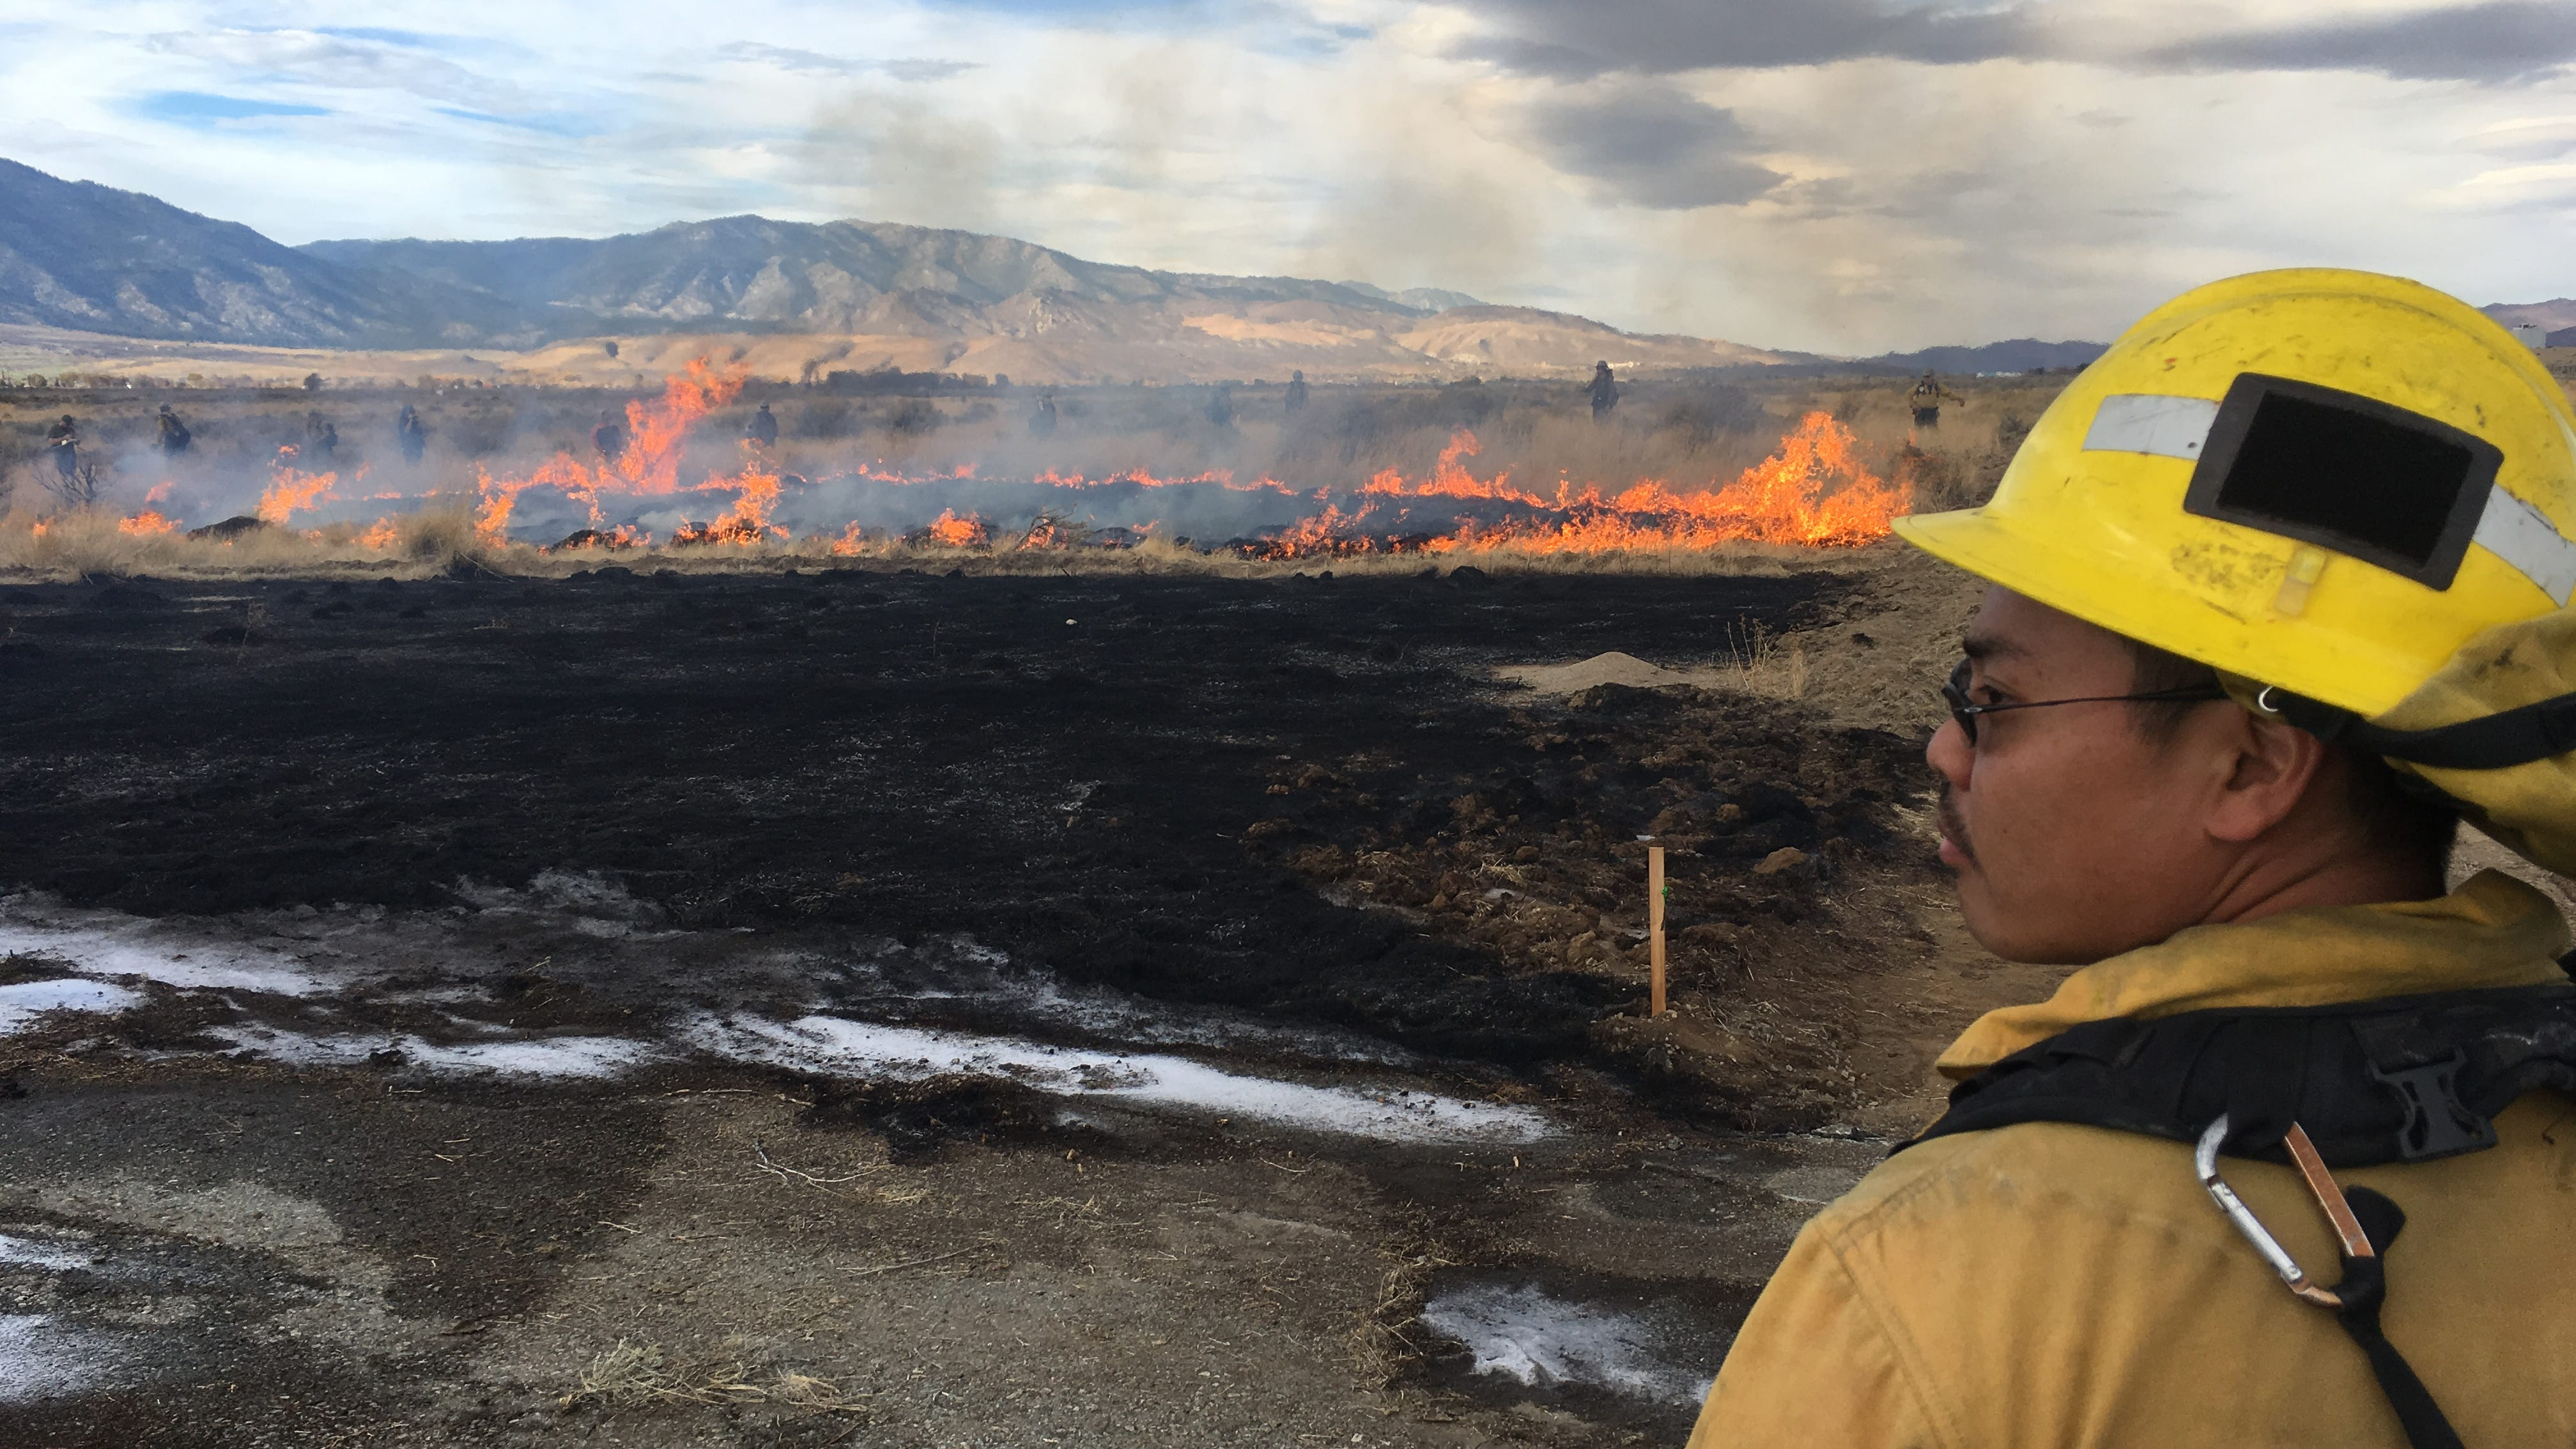 A firefighter watches over a fire in Minden, Nev., on Oct. 24, 2018 that was intentionally set as part of a training course for wildland fire origin and cause investigators.